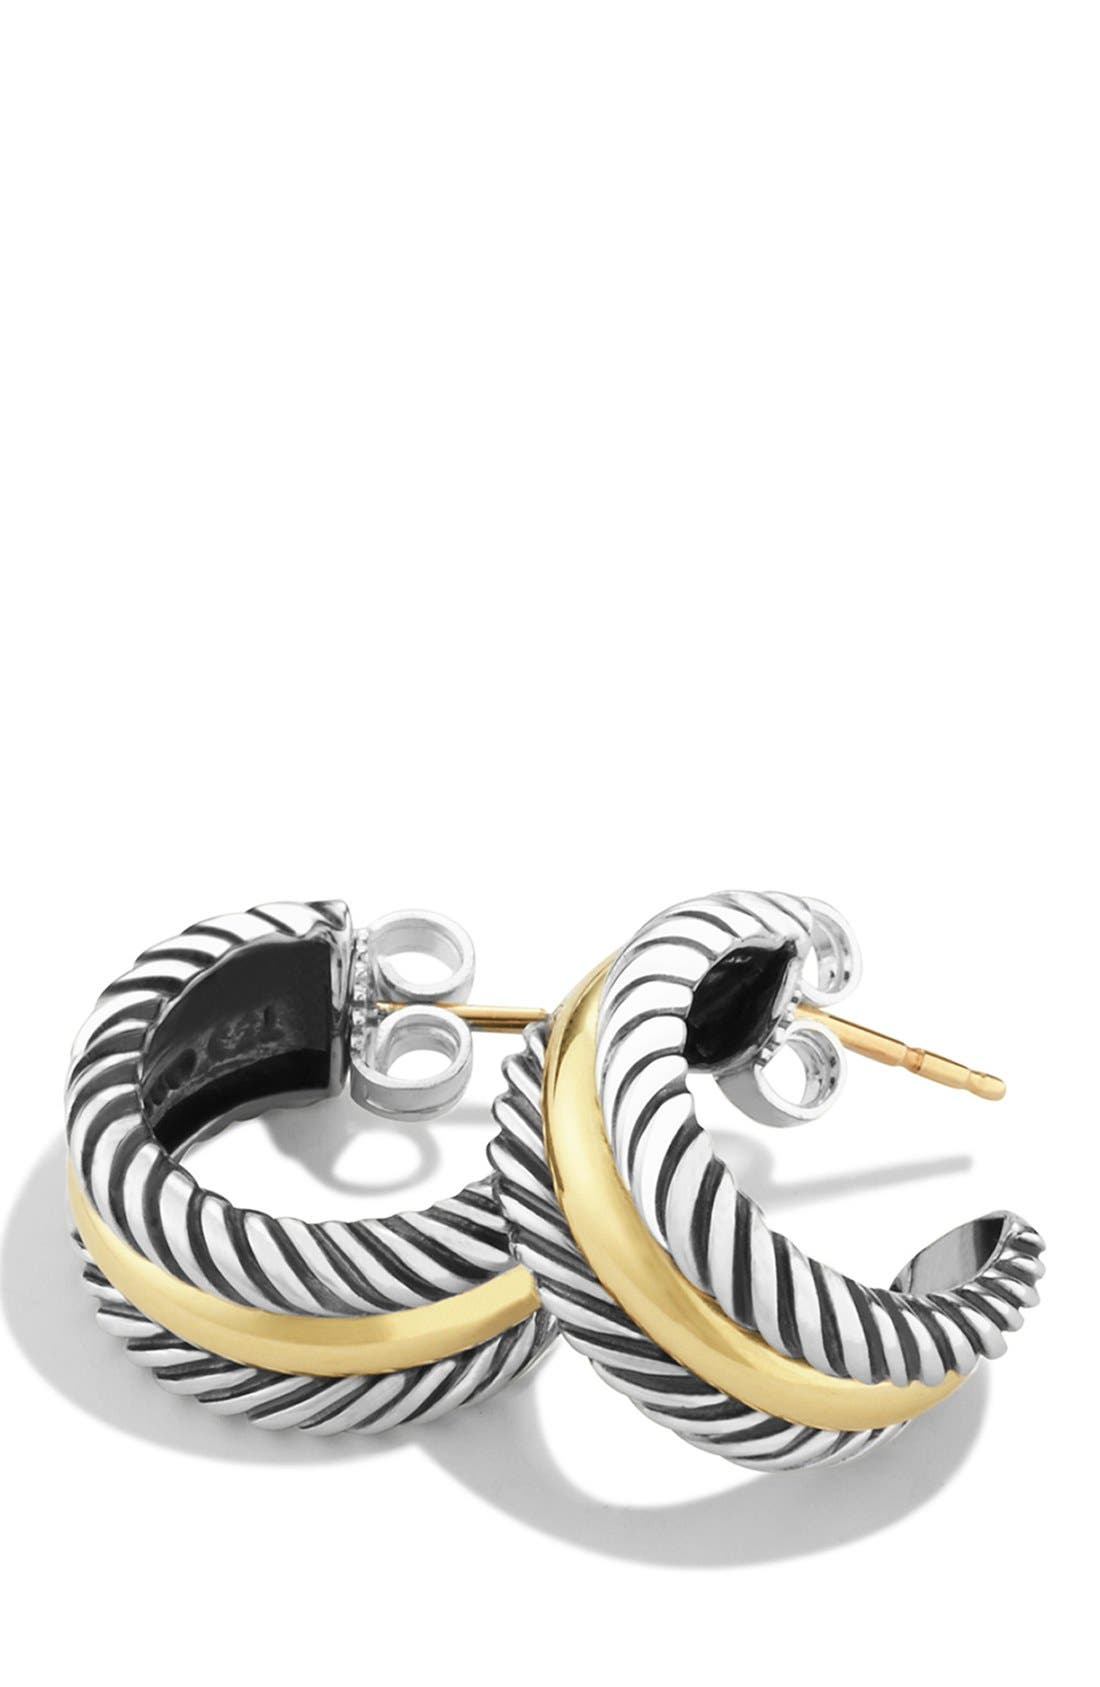 DAVID YURMAN,                             'Cable Classics' Hoop Earrings with Gold,                             Alternate thumbnail 2, color,                             TWO TONE